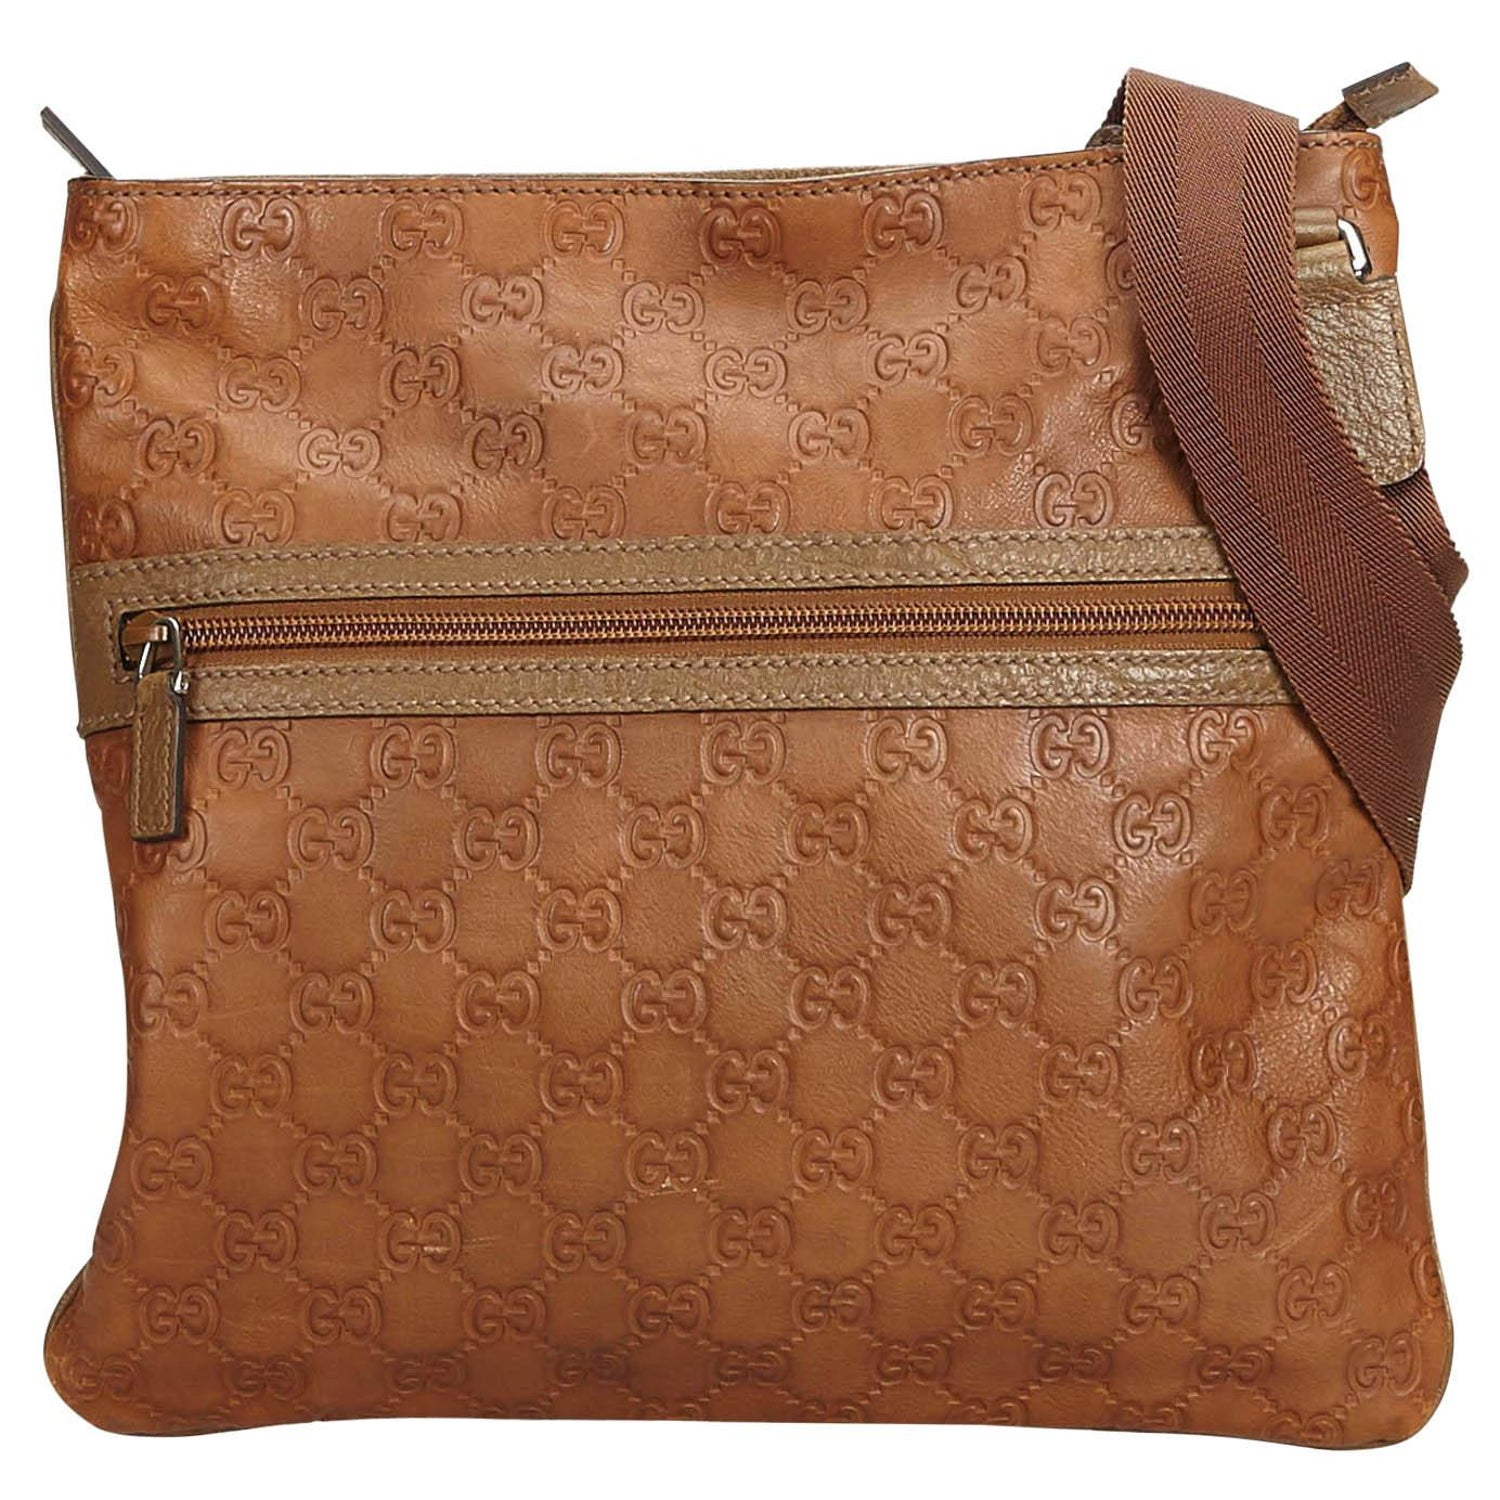 ab54d866ca3 Gucci Brown Leather Guccissima Crossbody Italy at 1stdibs